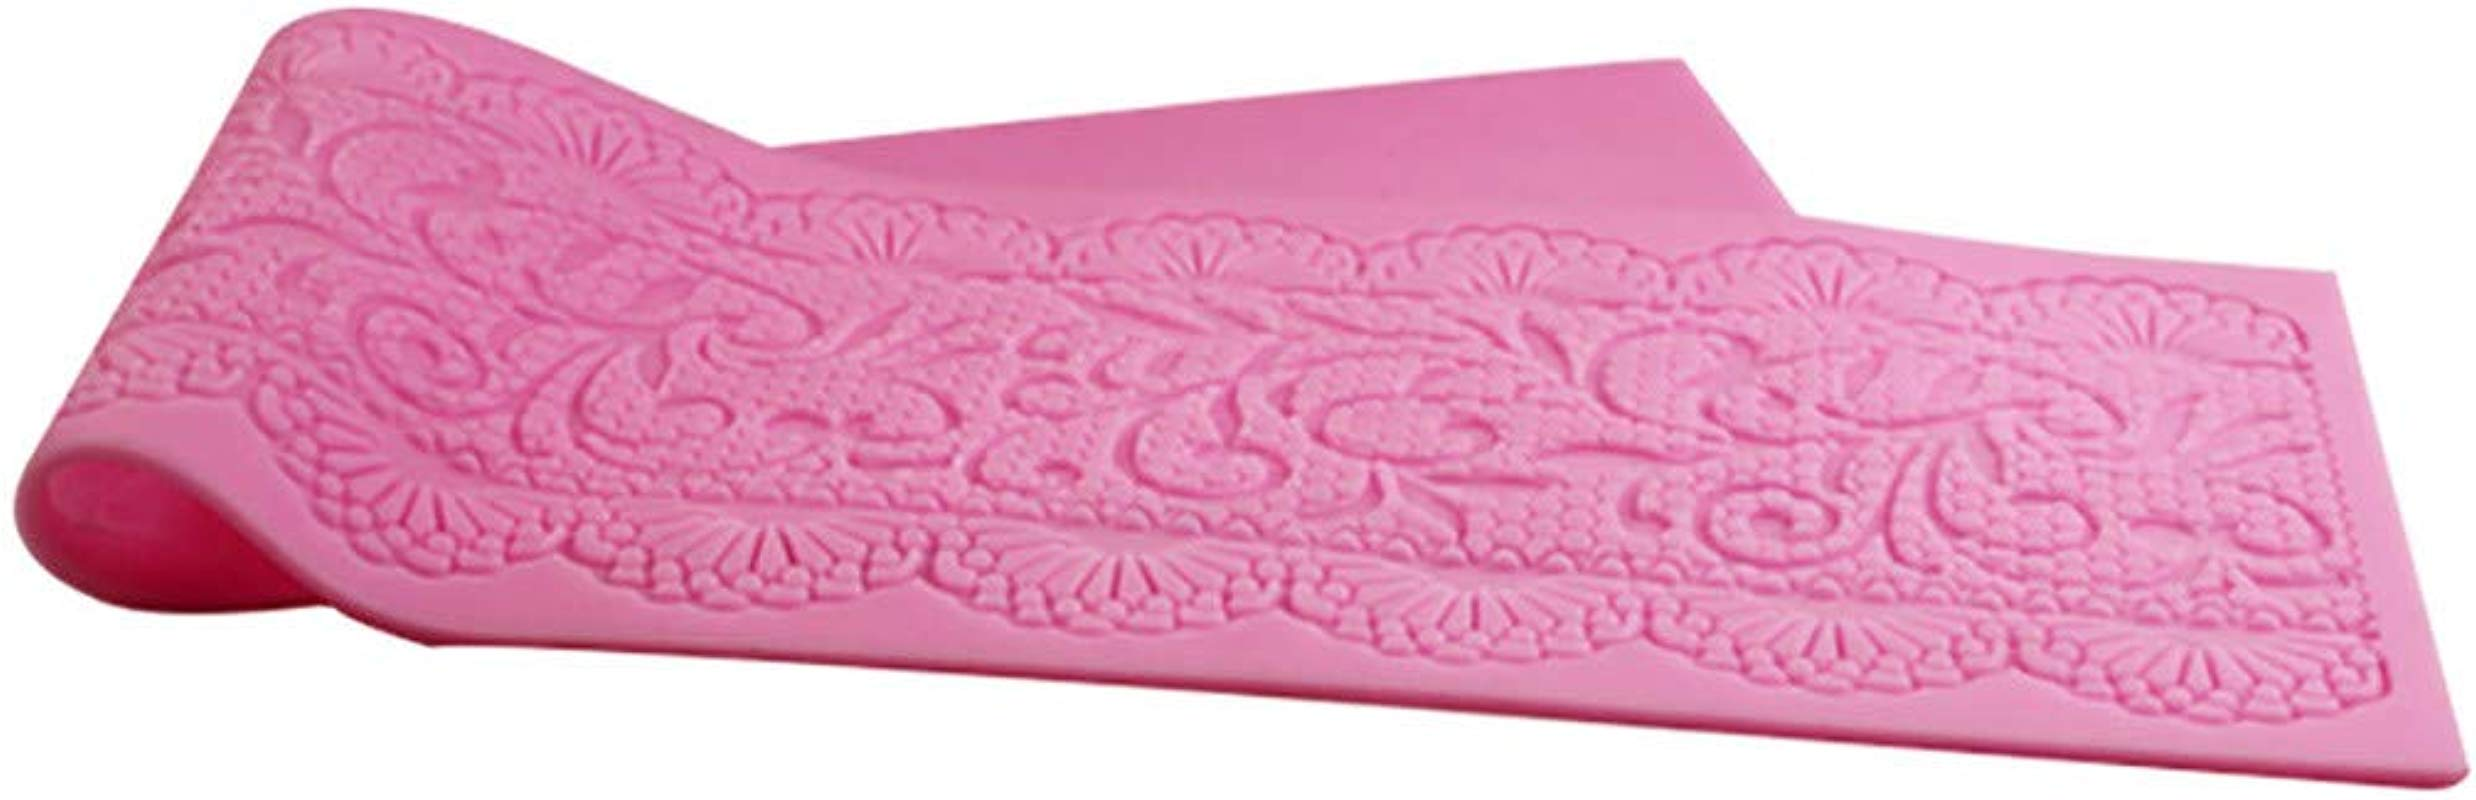 Lace Pattern Embellisment Pink Silicone Mould Cake Decor Sugar Chocolate Mold